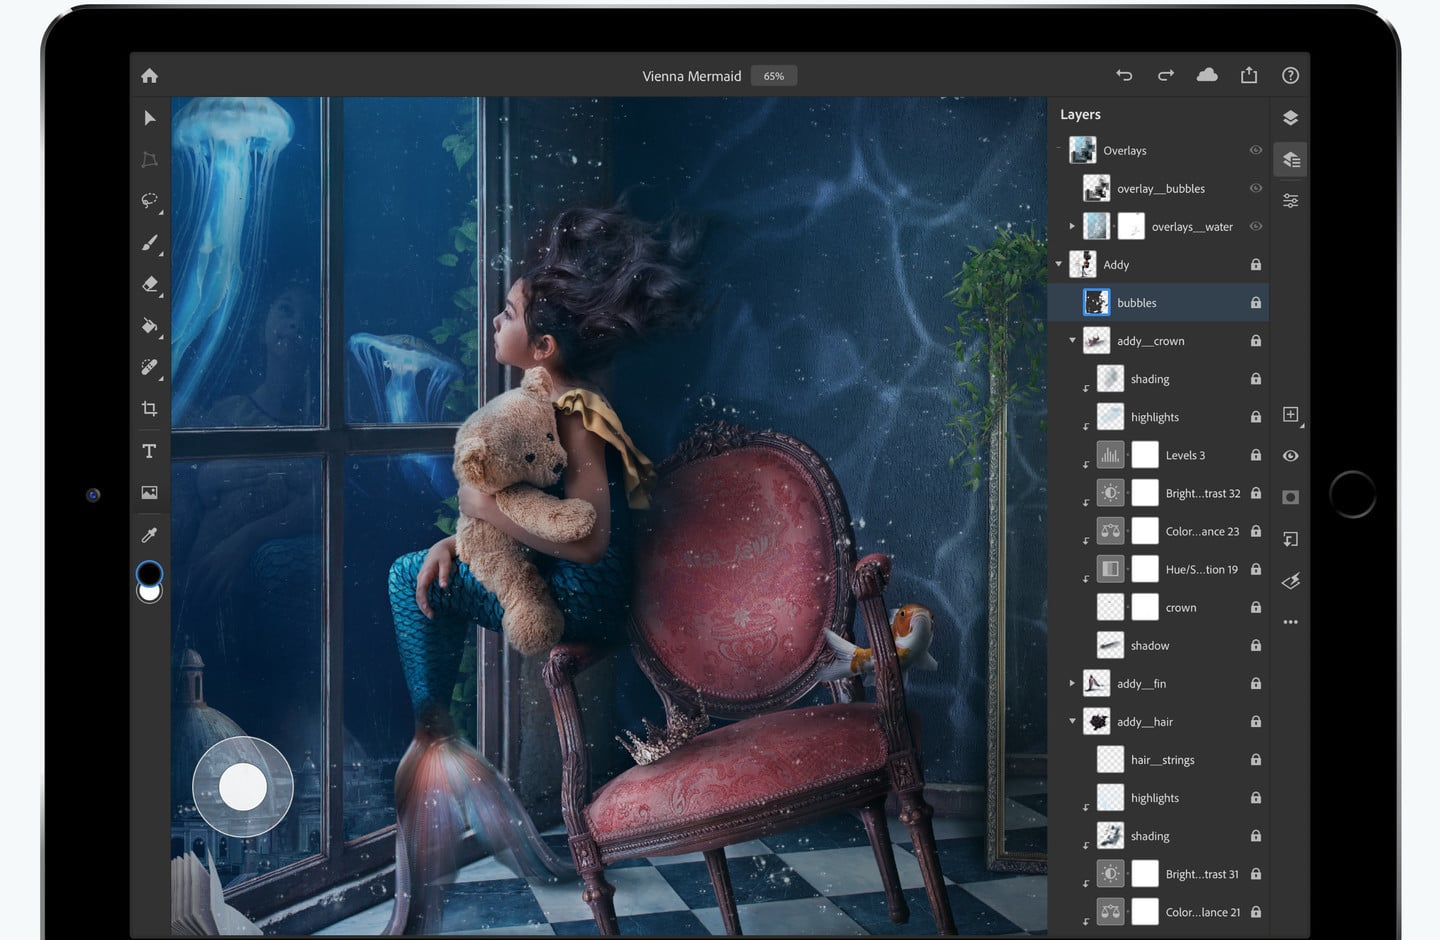 Adobe Photoshop for iPad finally released